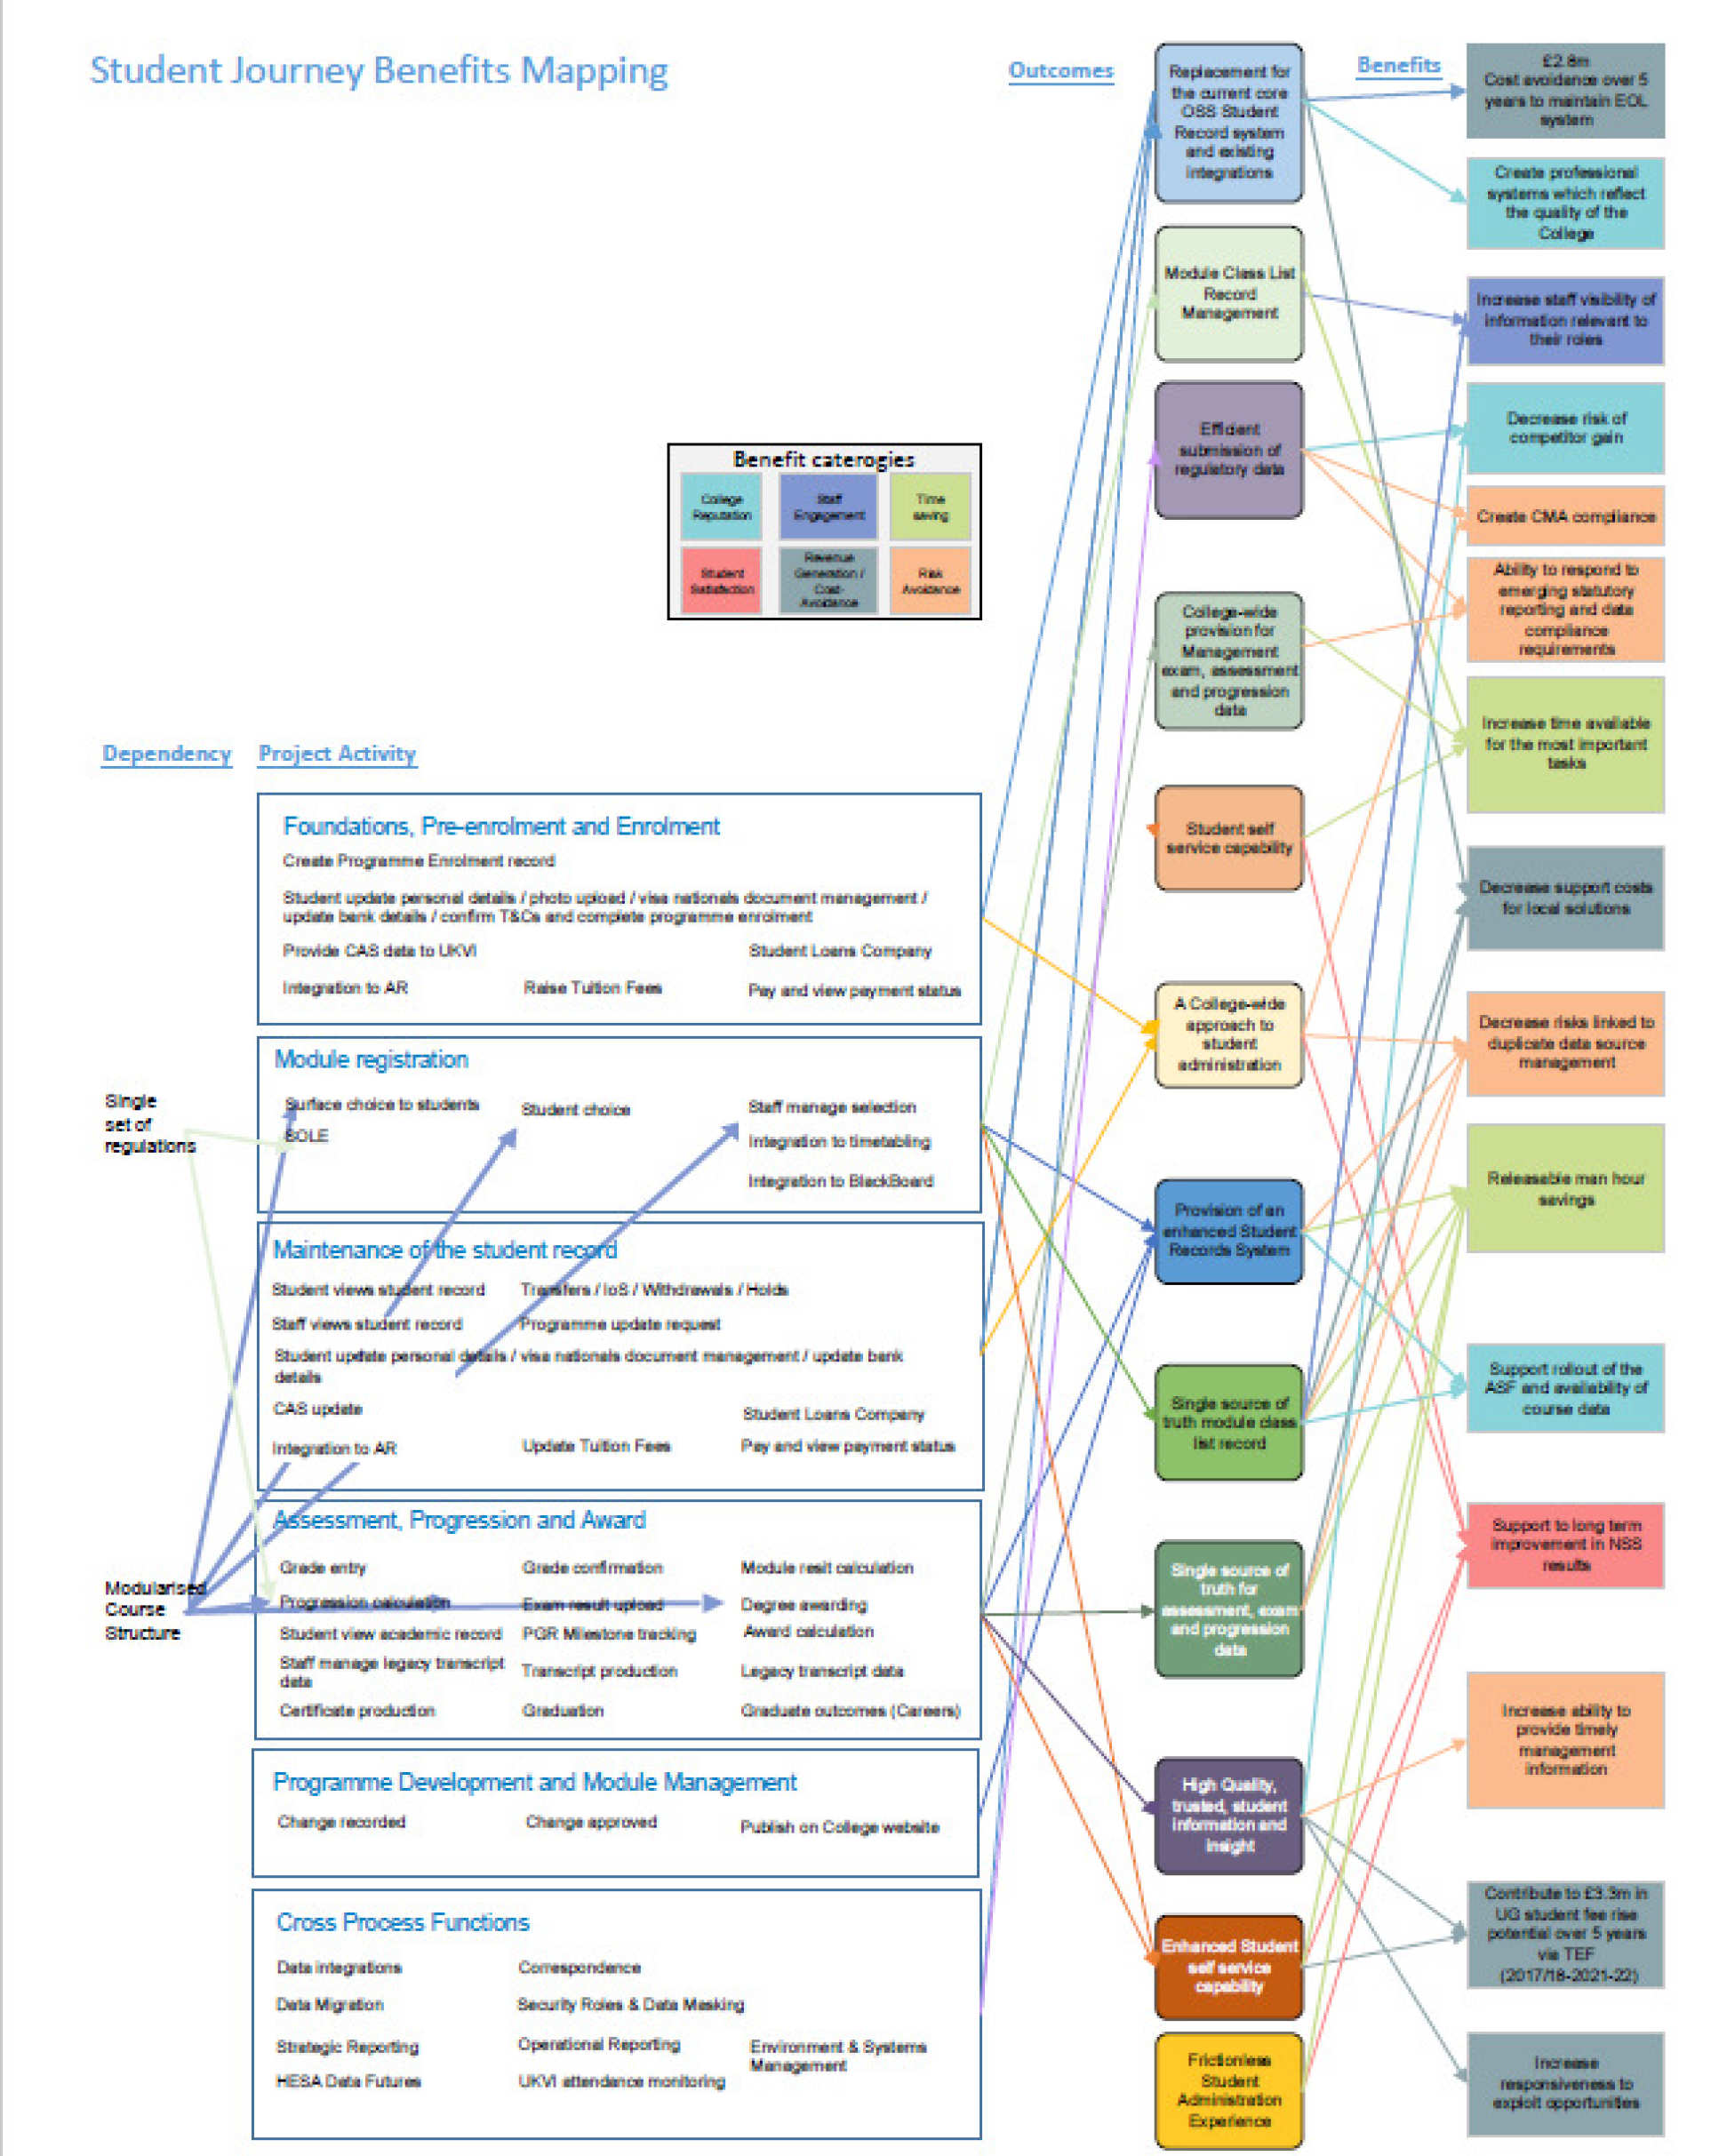 Student Journey Benefits Map